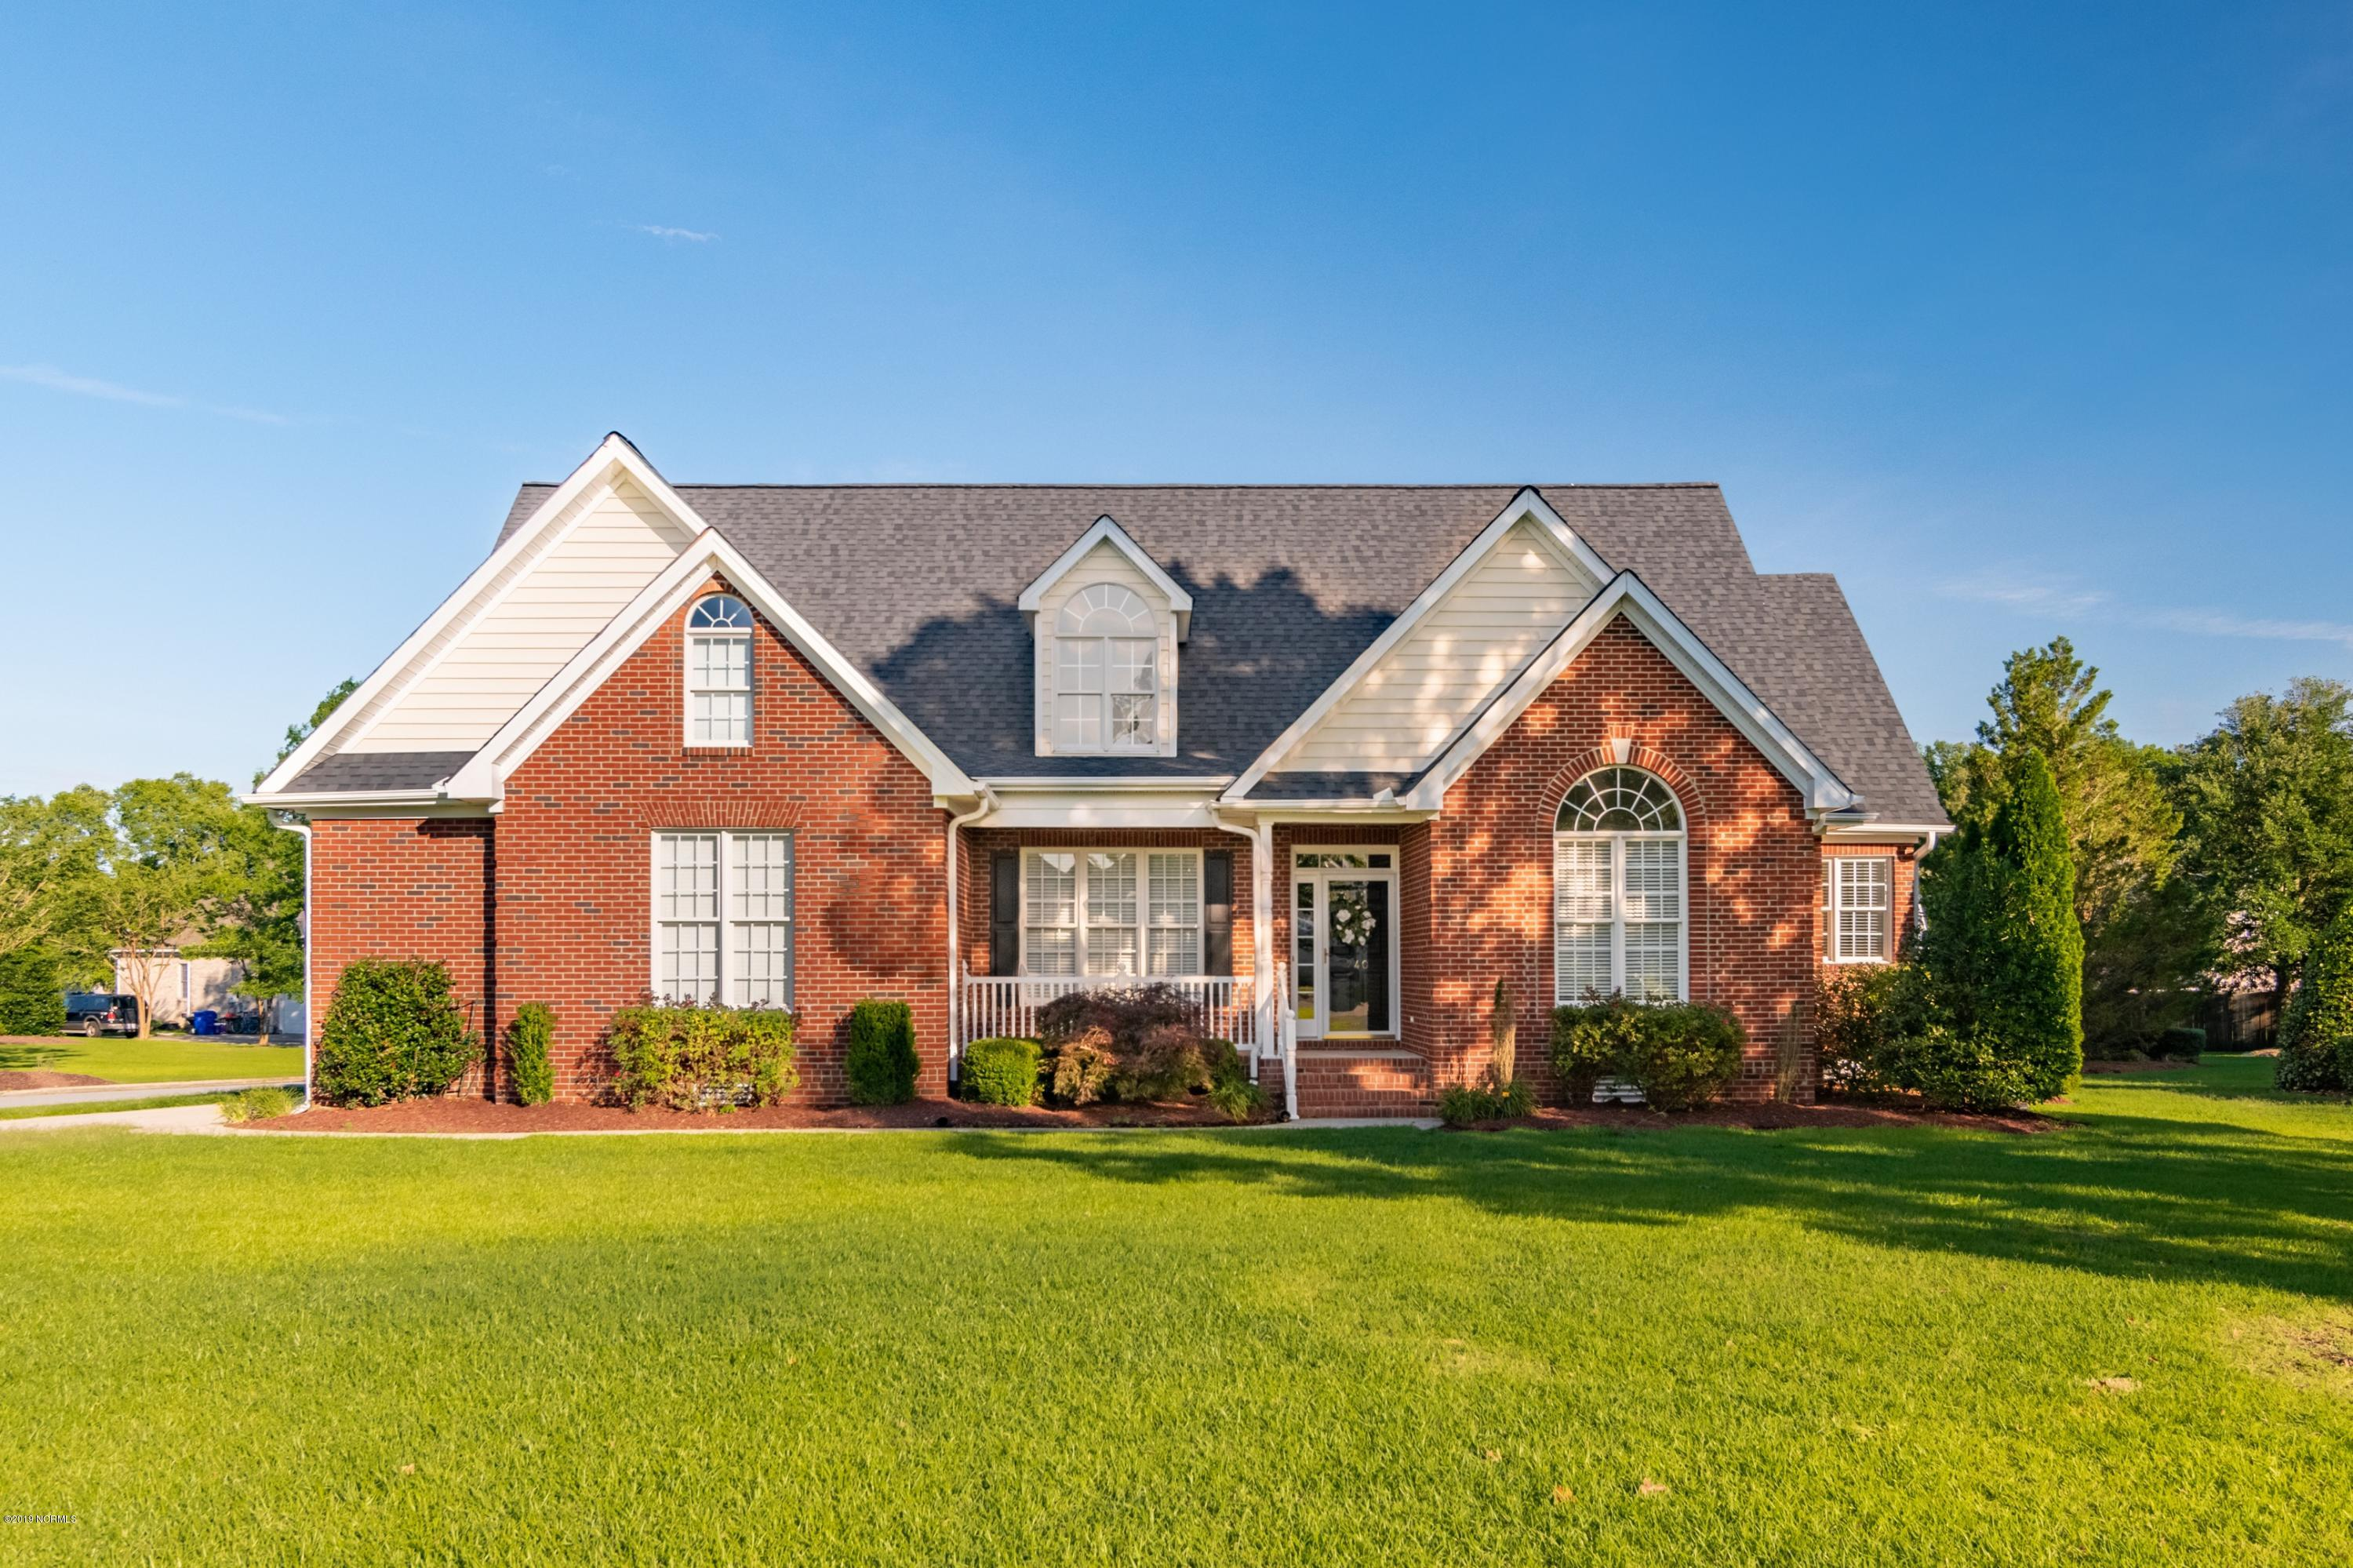 Property for sale at 240 W Meath Drive, Winterville,  North Carolina 28590